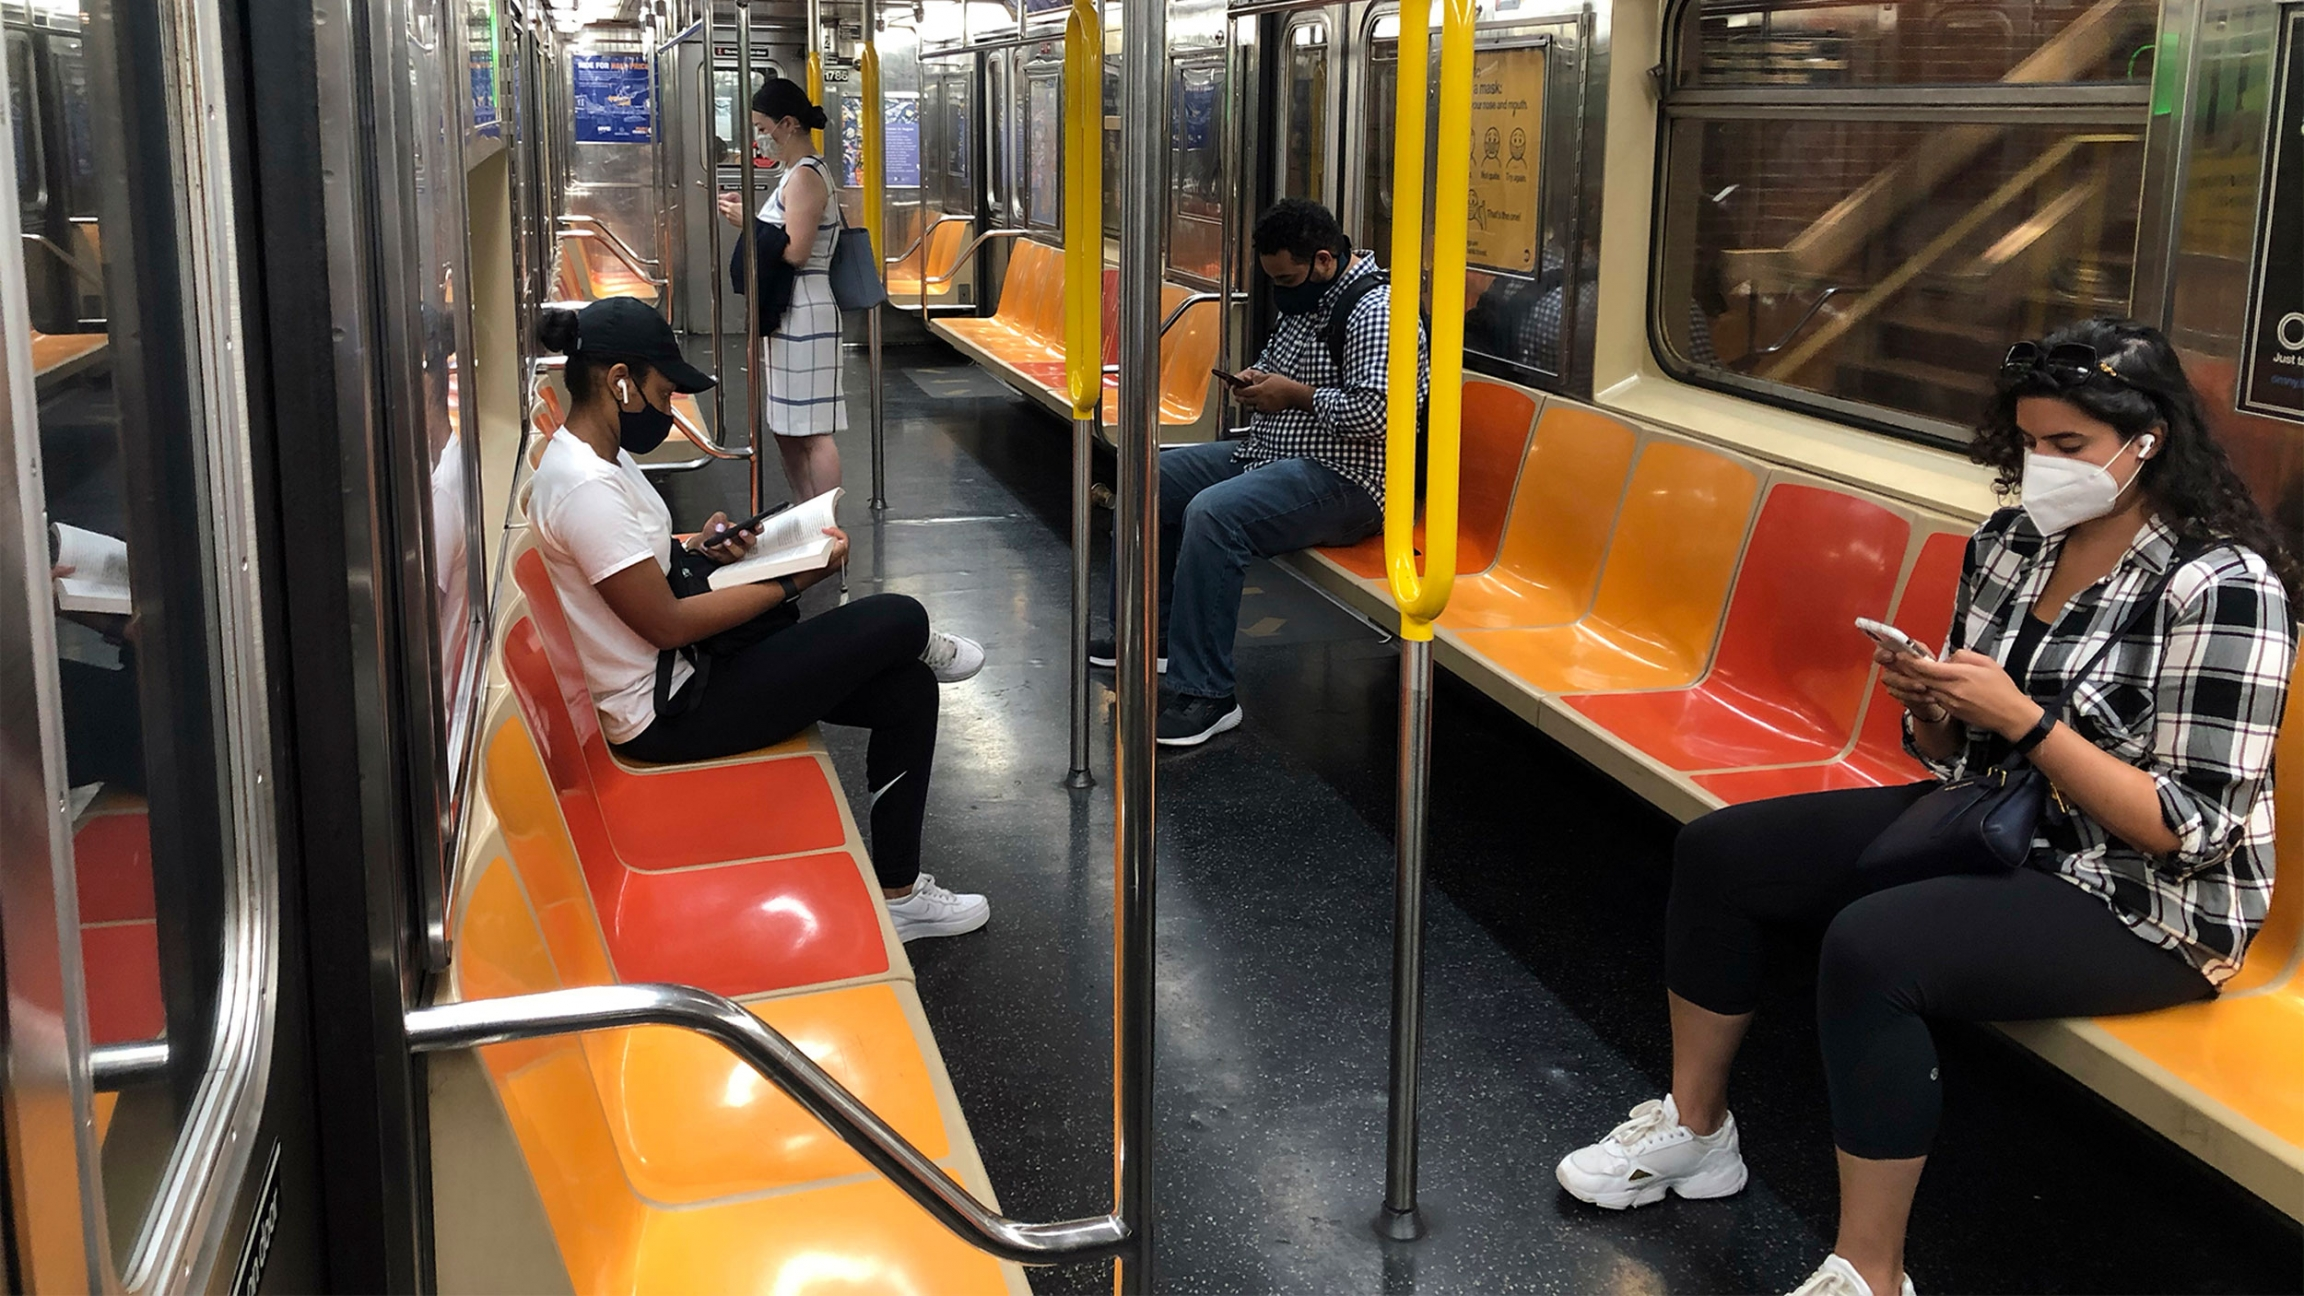 People wearing different types of black and white clothes sit and stand among orange and yellow seats on the New York subway